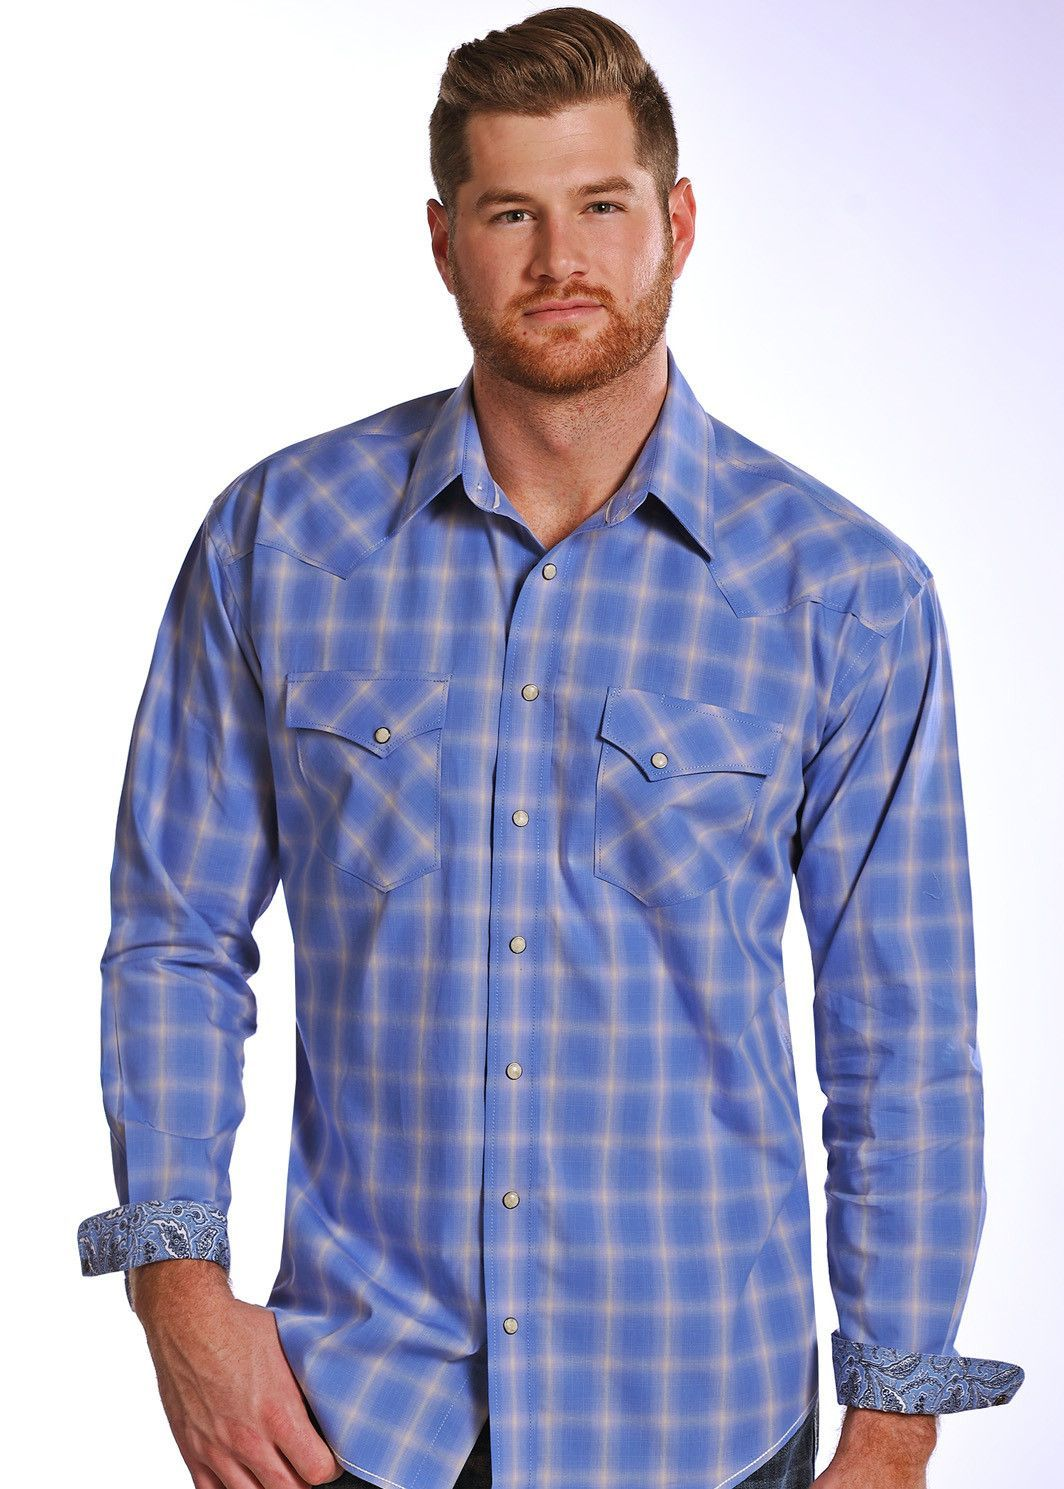 Flannel shirts at kohl's  Panhandle Slim Mens Snap Small Ombre Plaid Shirt RS  Products